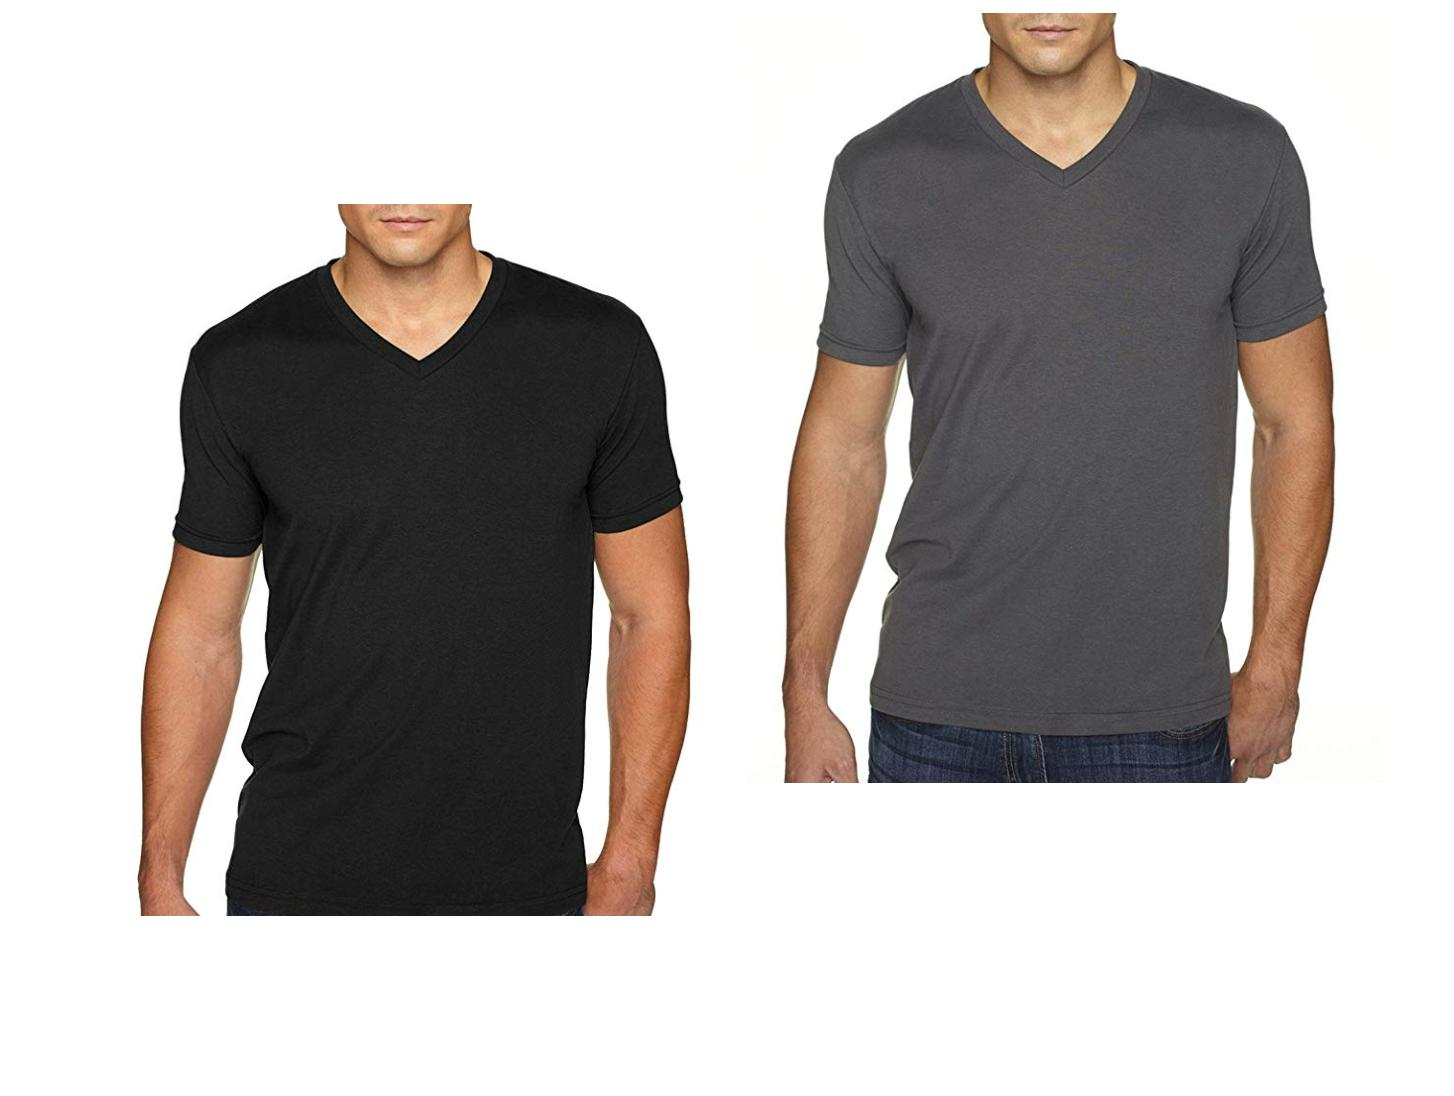 apparel 6440 fitted sueded vneck